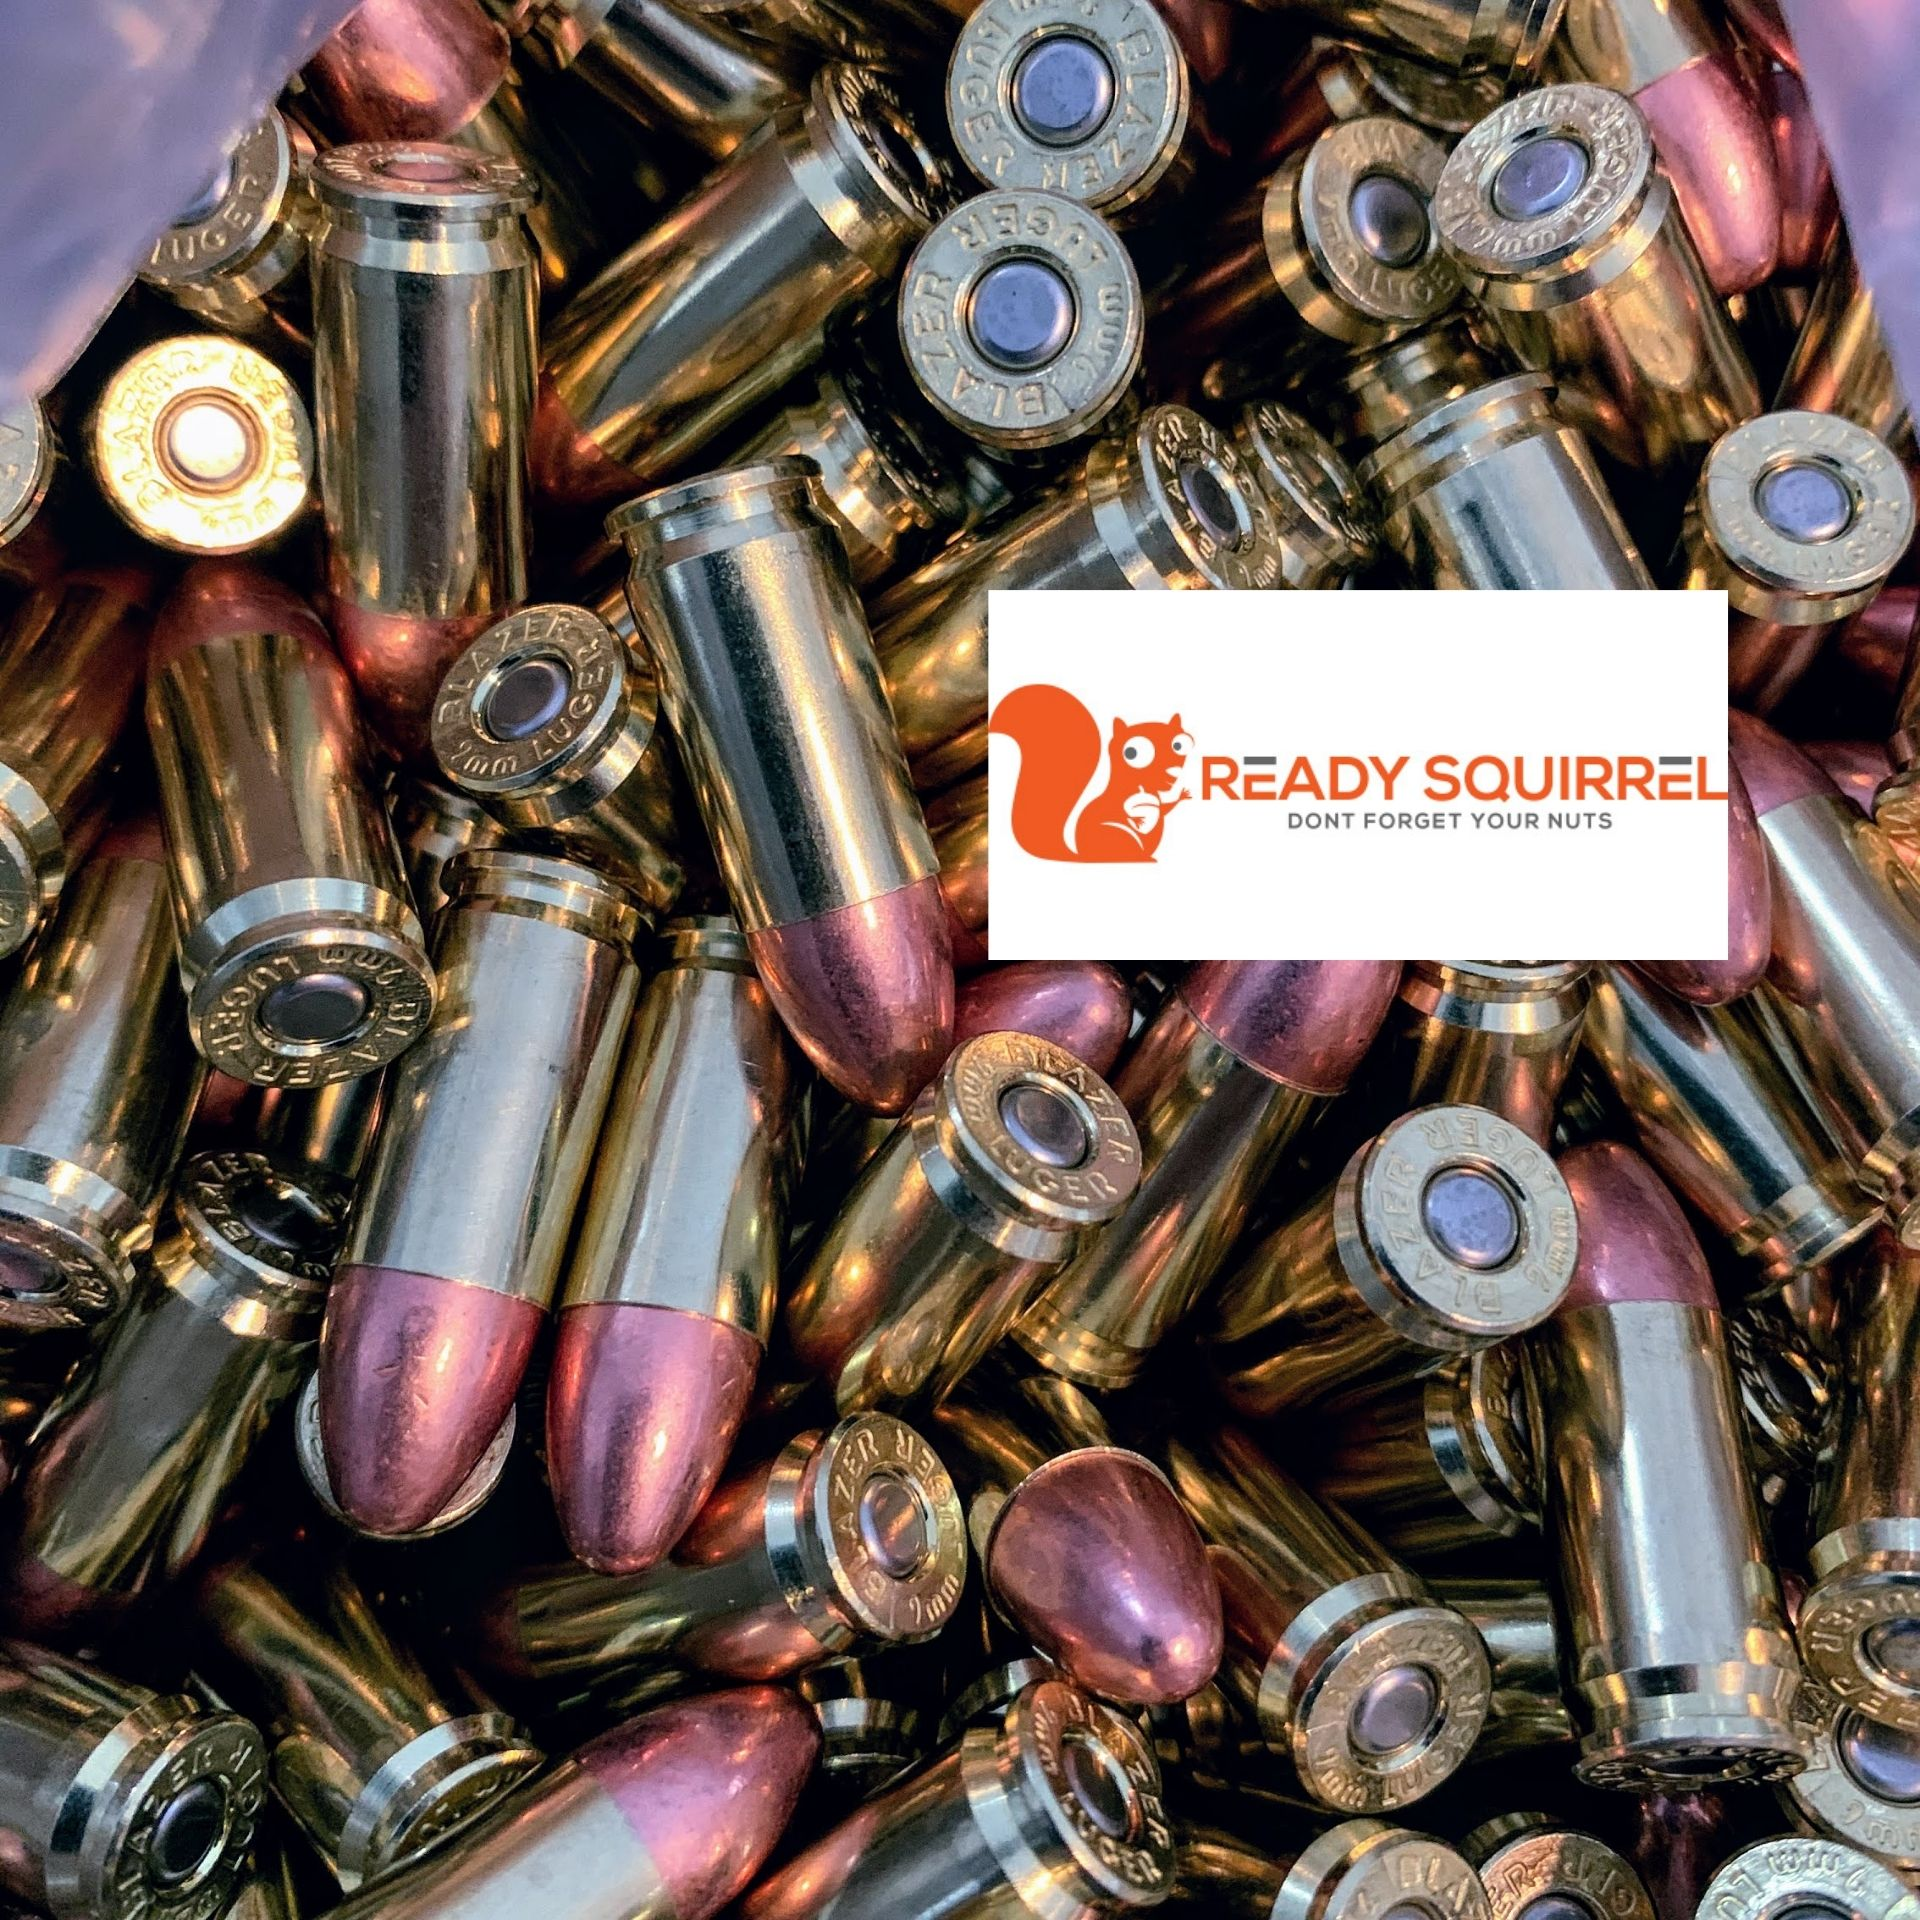 Can You Store Ammo In Mylar Bags?